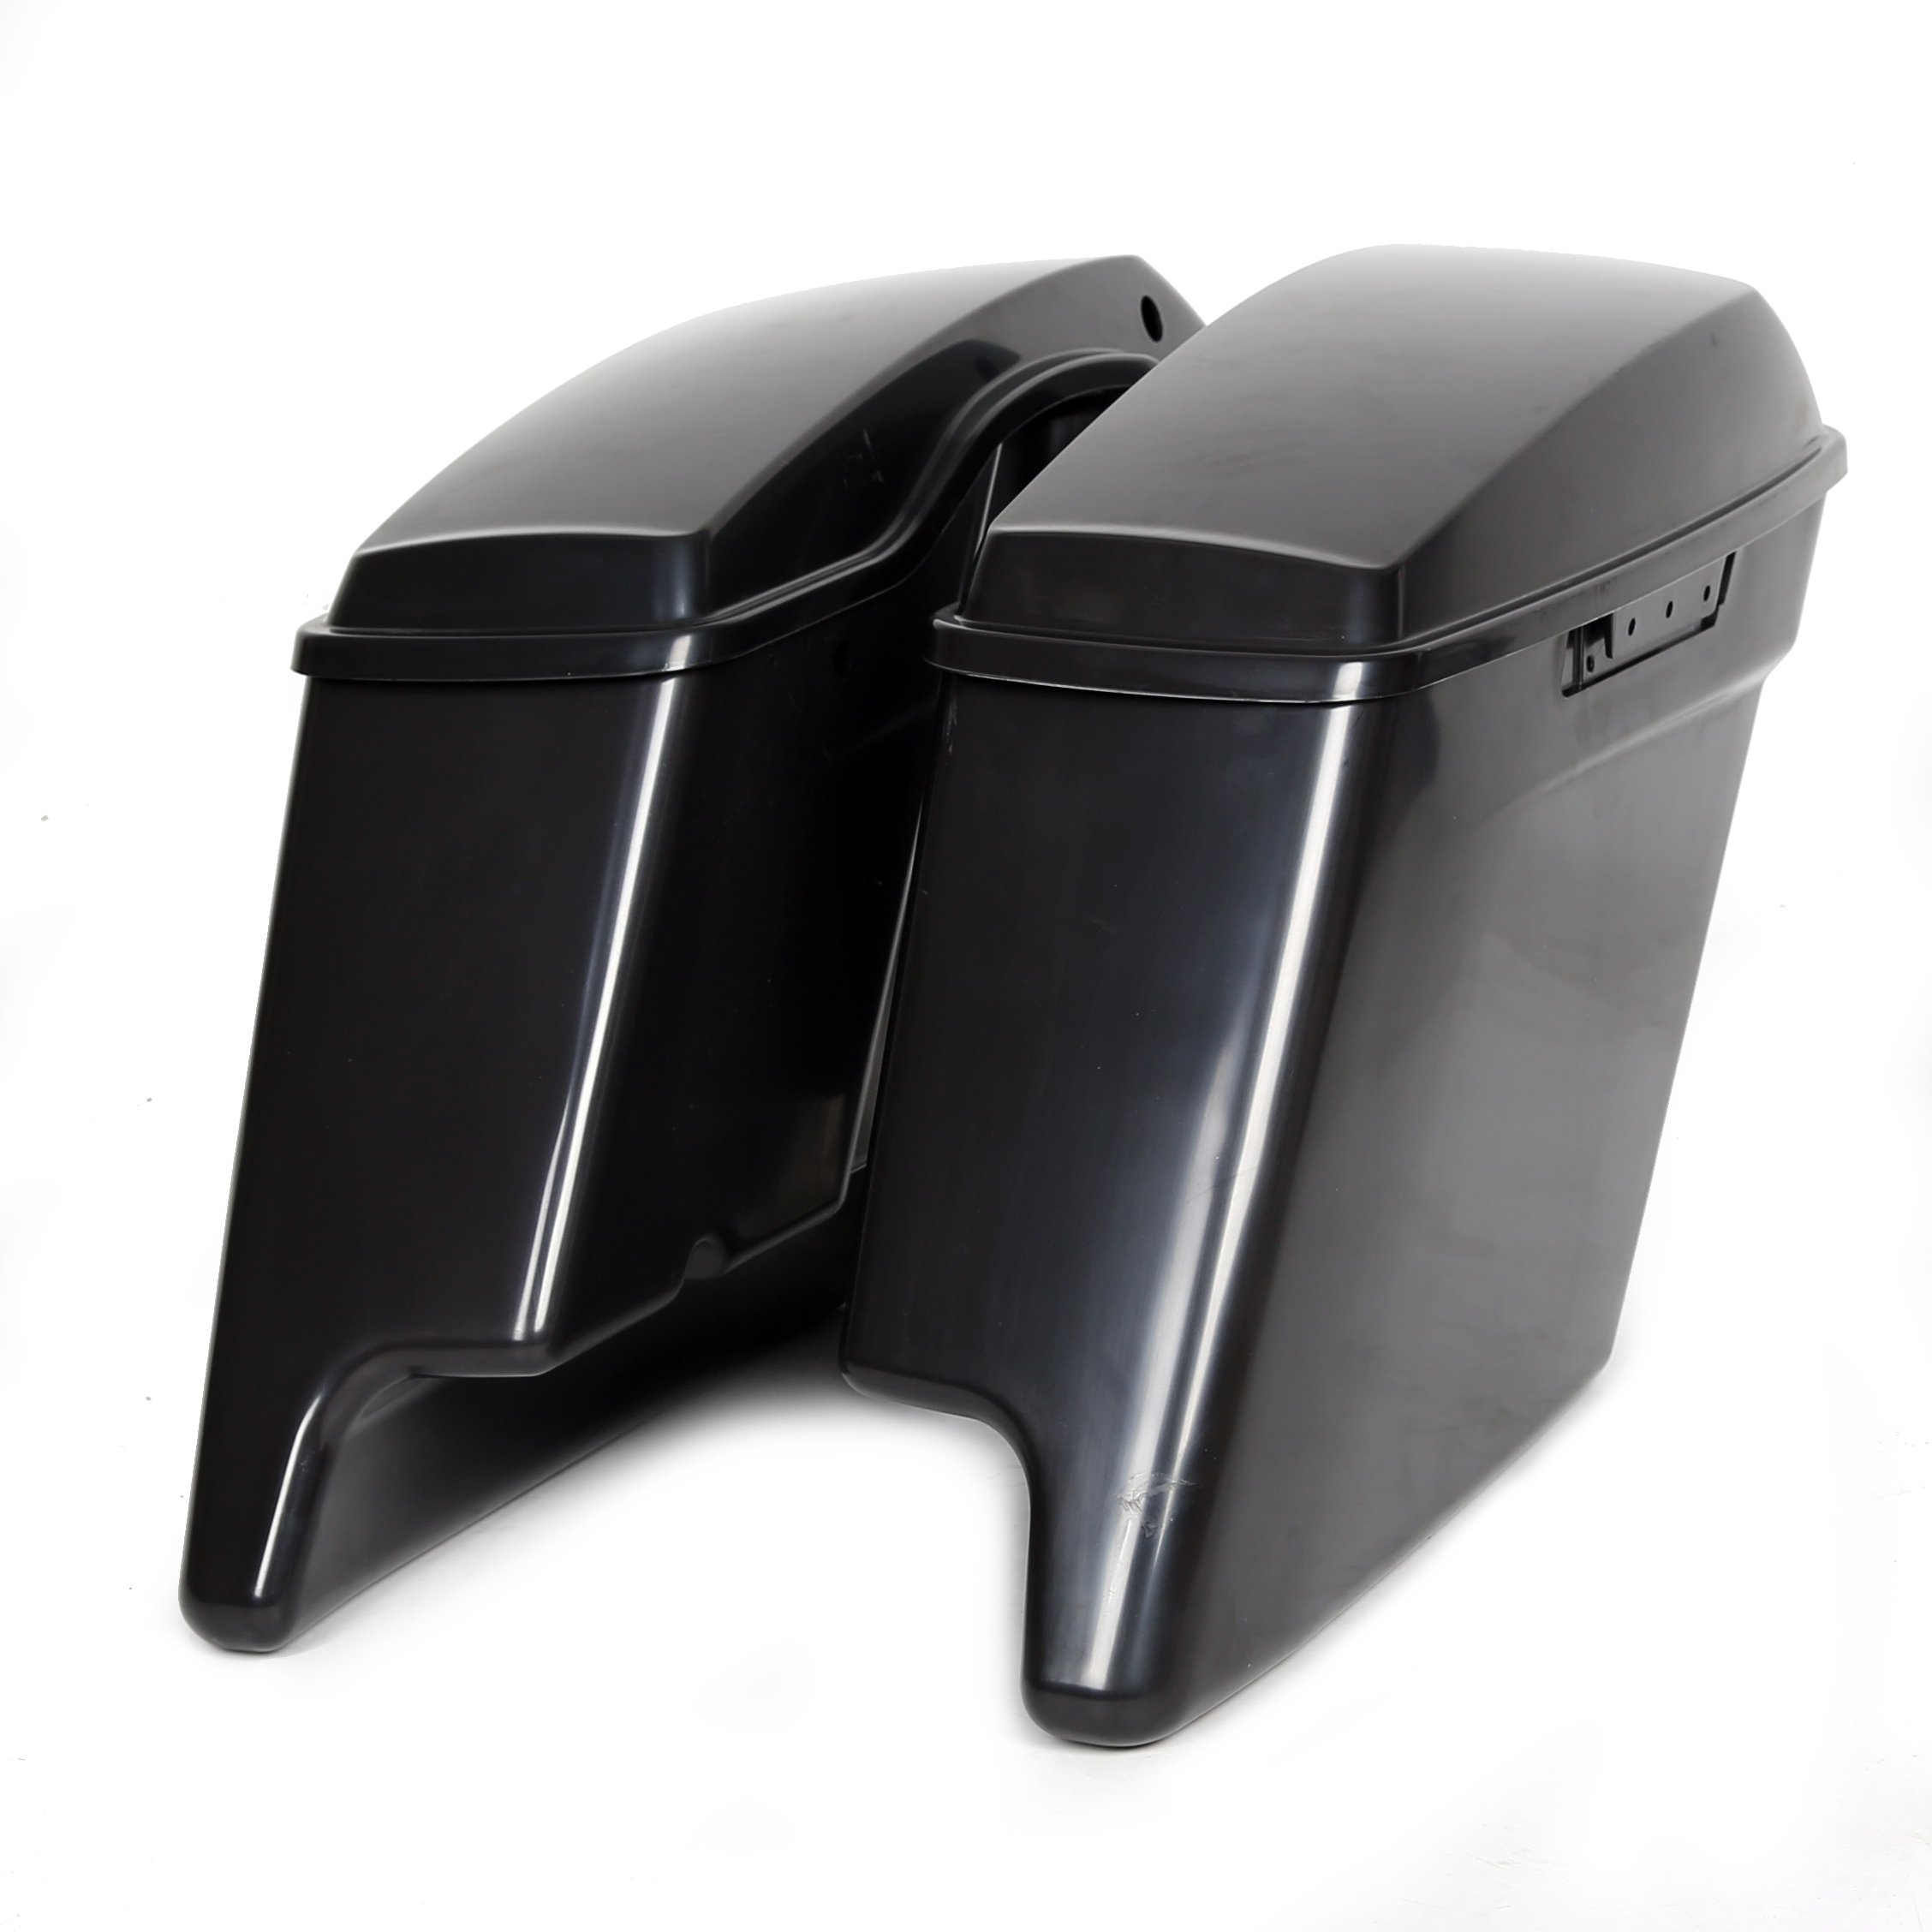 5'' Complete Black Painted/Unpainted Extended Stretched Saddlebags Saddle bag With or Without Hardware (latch kit and lock sets) or Harley Touring 14-18 (Unpainted Saddlebags Without Hardware)